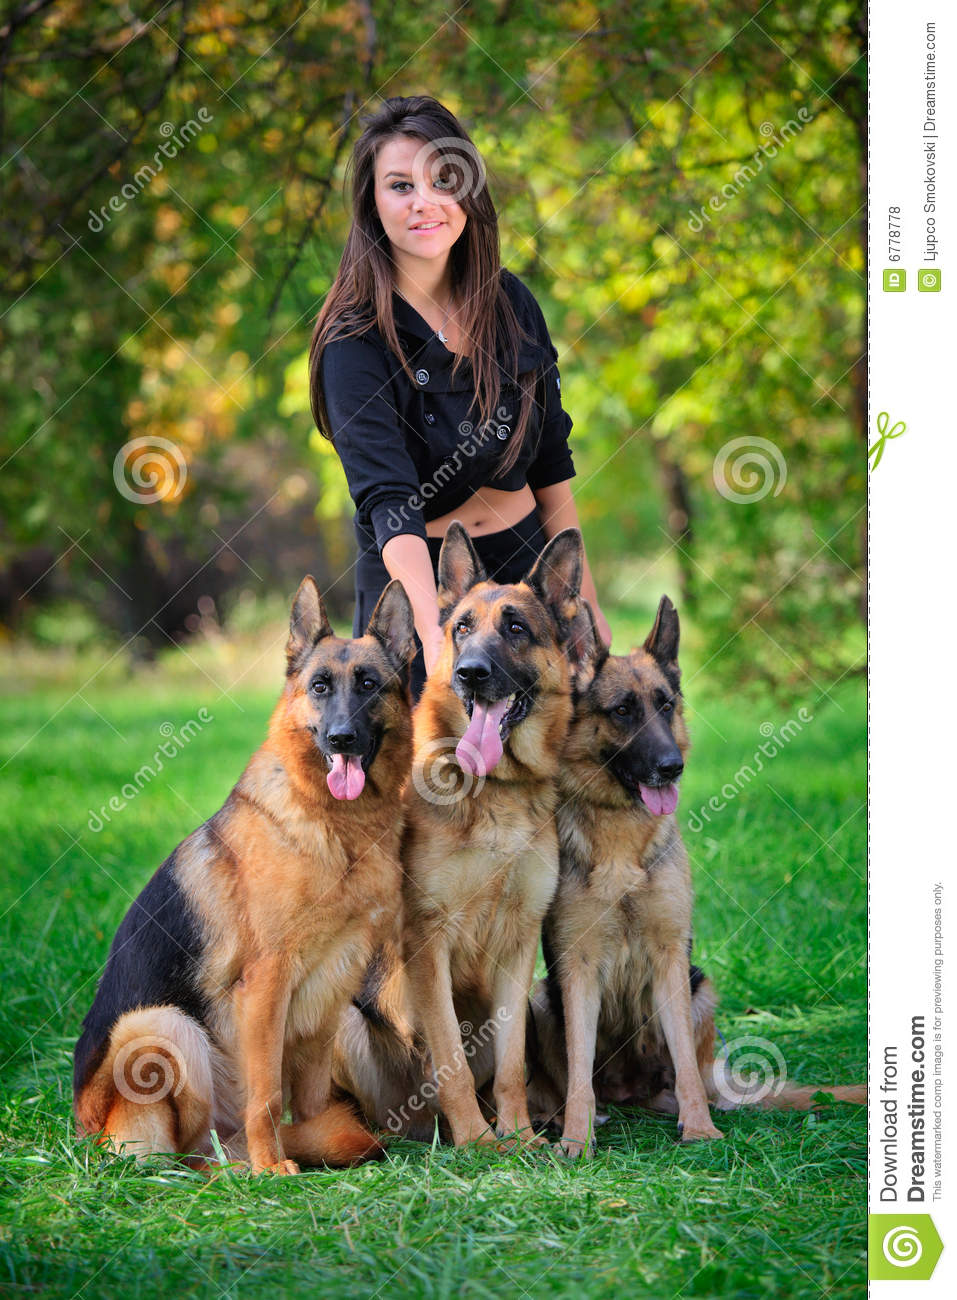 dogs are a girls - photo #36